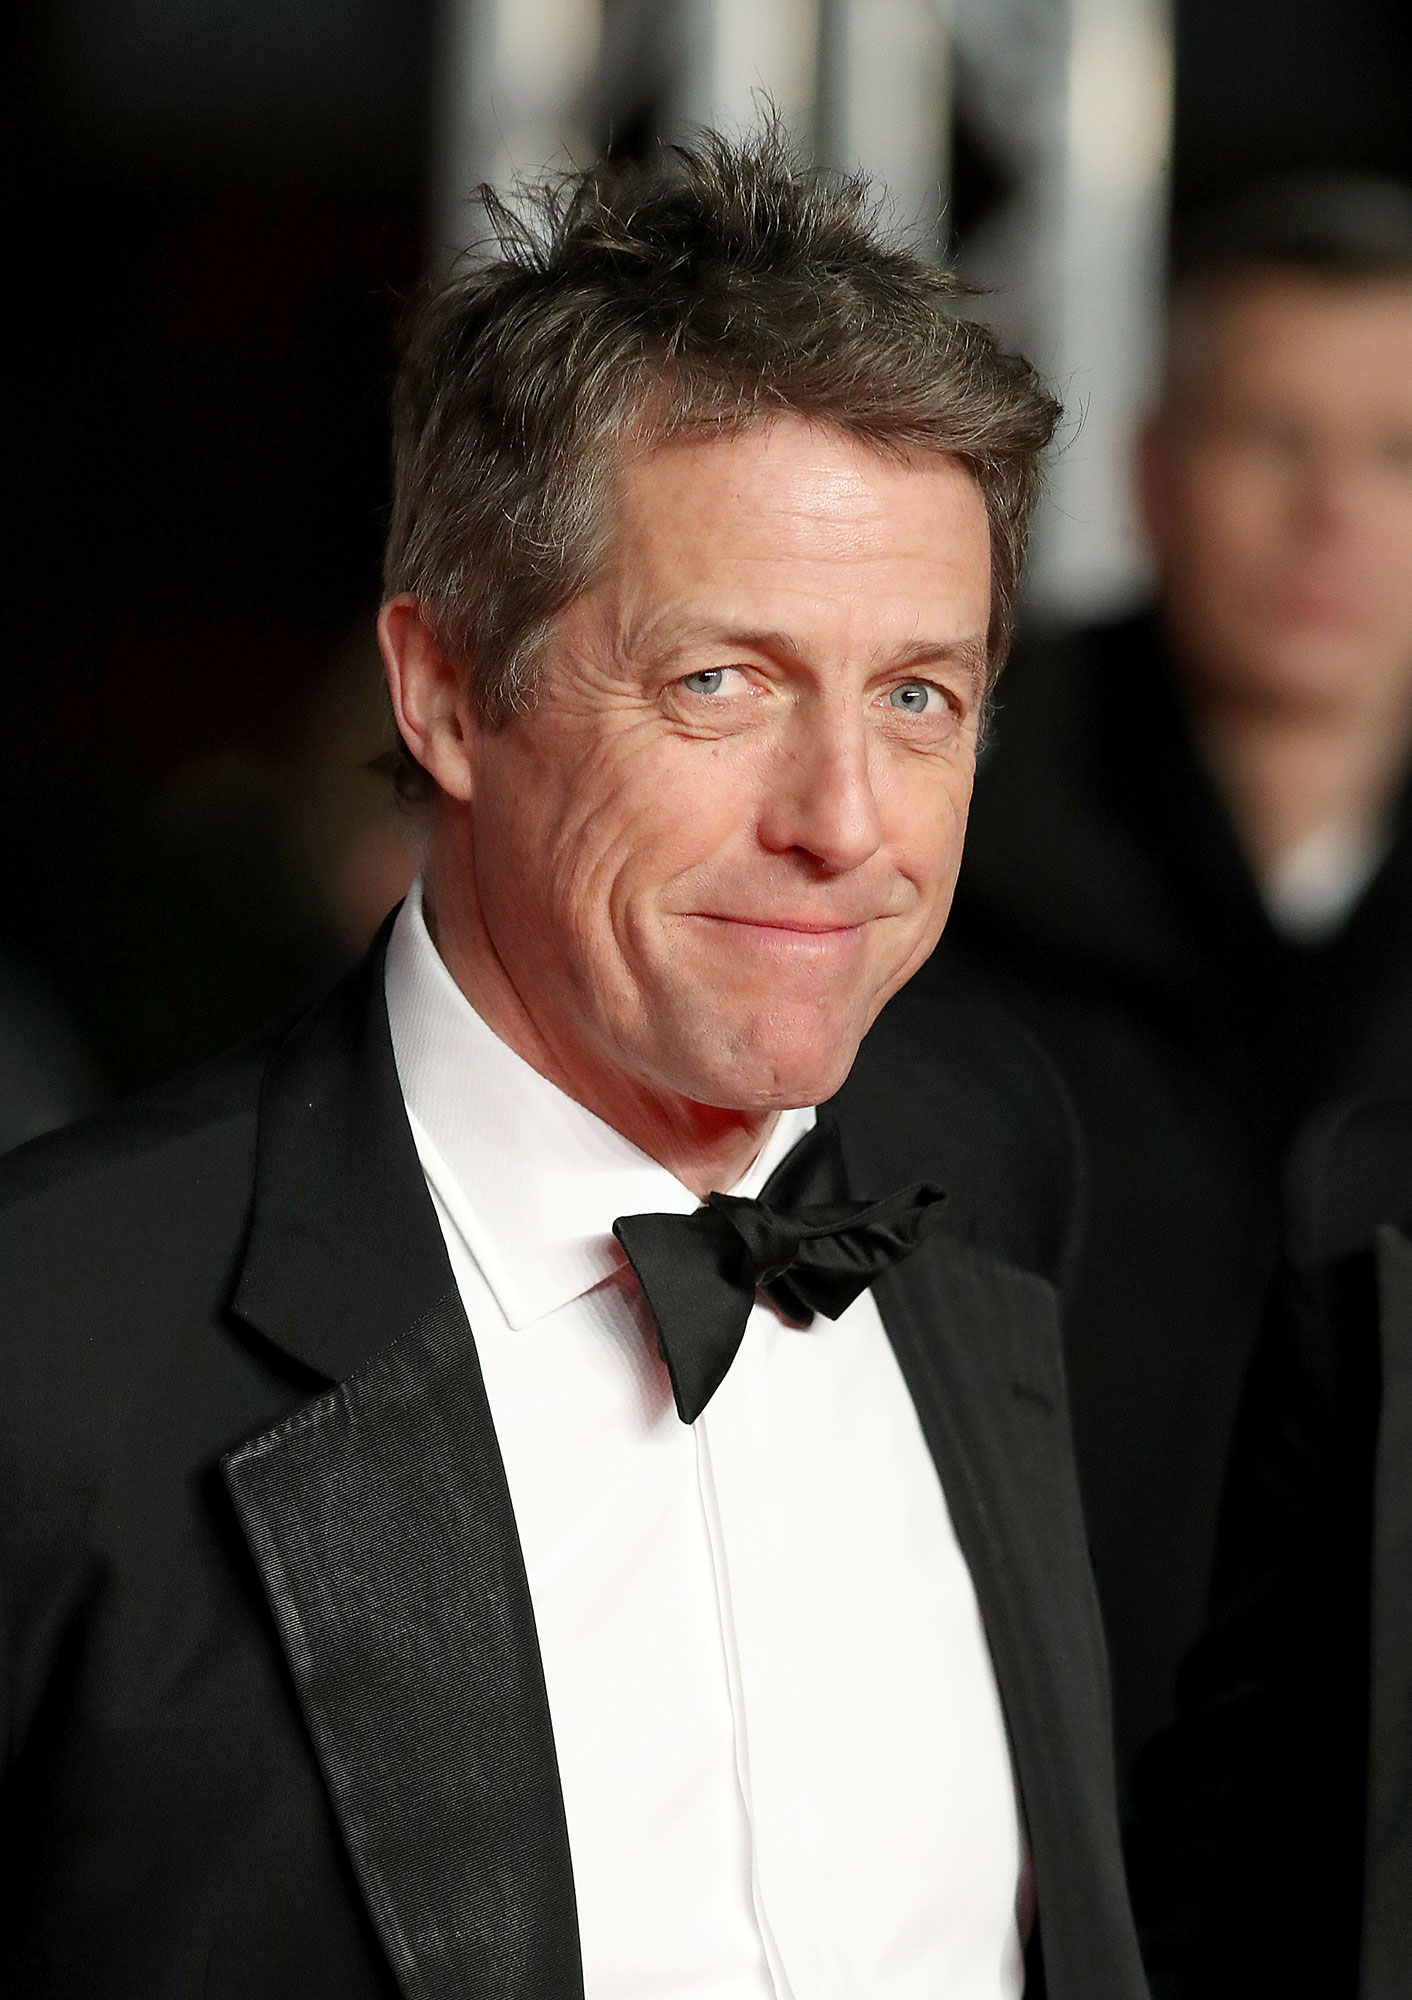 Hugh Grant - Stars Who Have Never Won Oscars - The Brit got cheeky after he was nominated for a Golden Globe in 2019 for his work in his television role in A Very English Scandal , but he hasn't had the opportunity to do the same for the Oscars; the Love Actually star has yet to be nominated.